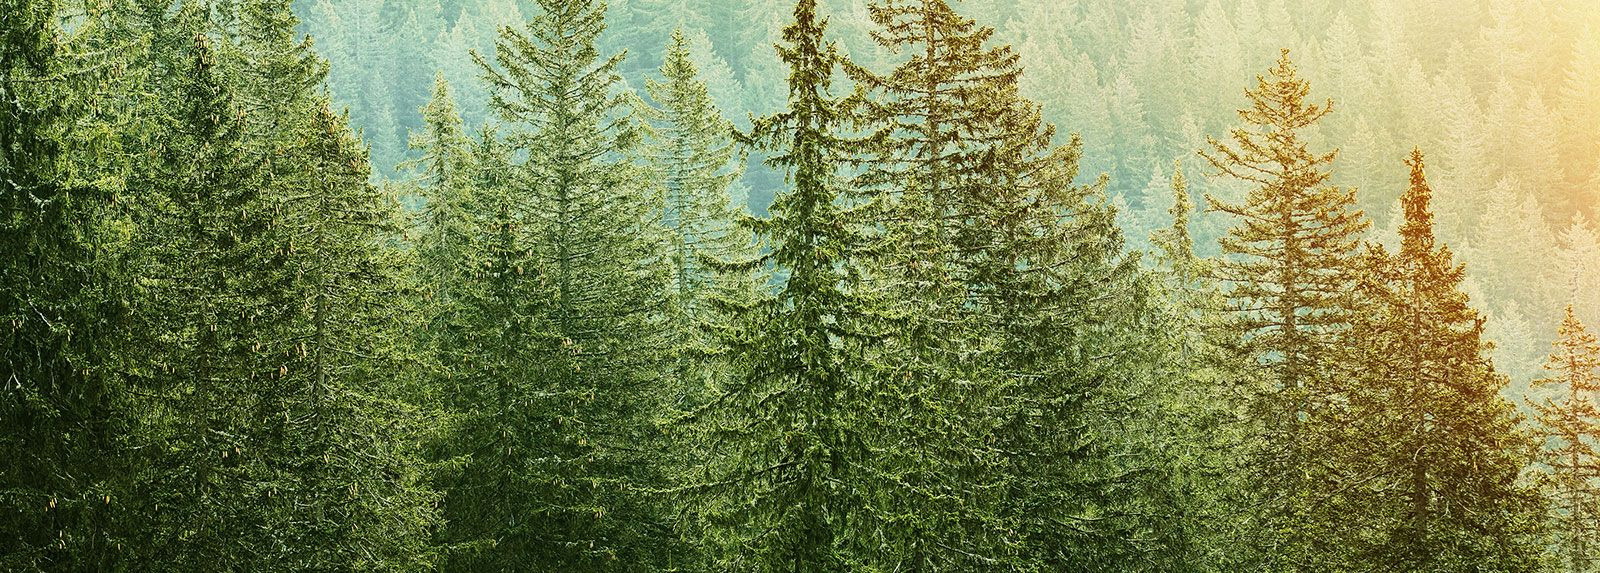 Green Coniferous Forest